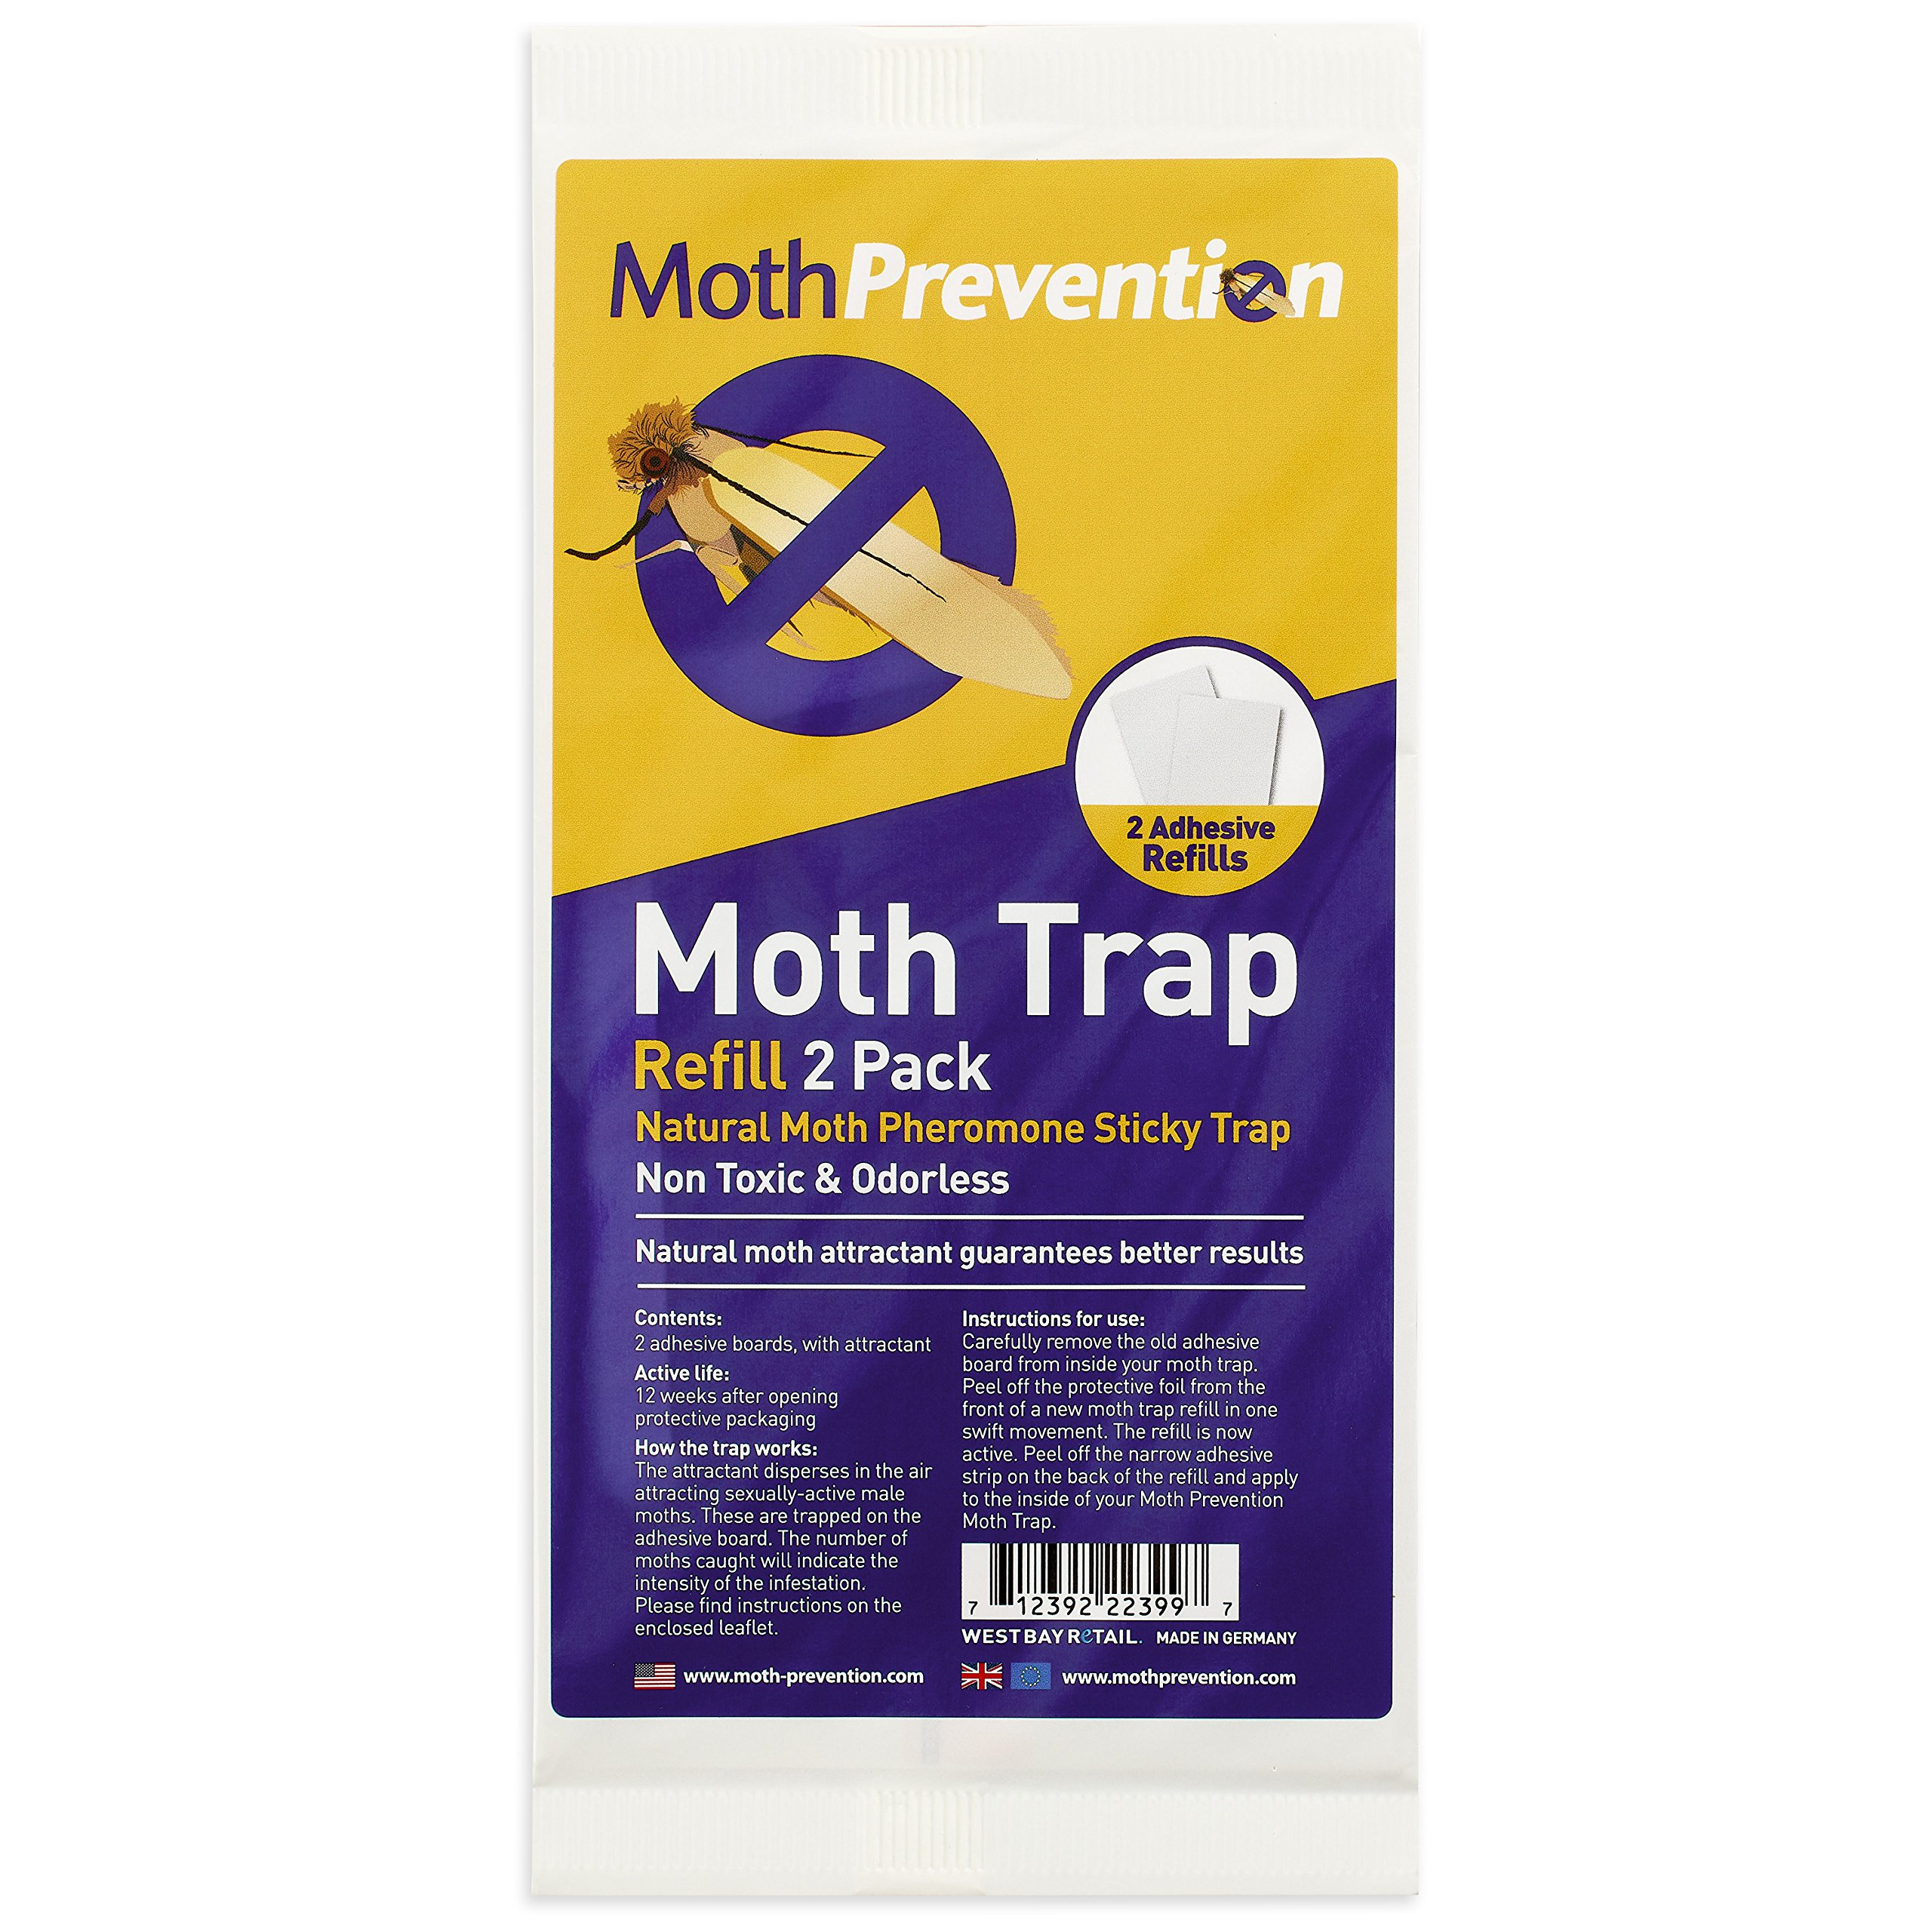 MOTH KILLER KIT for Clothes Moths & Carpet Moths by Moth-Prevention - EXTREME POWER! by West Bay Retail (Image #6)